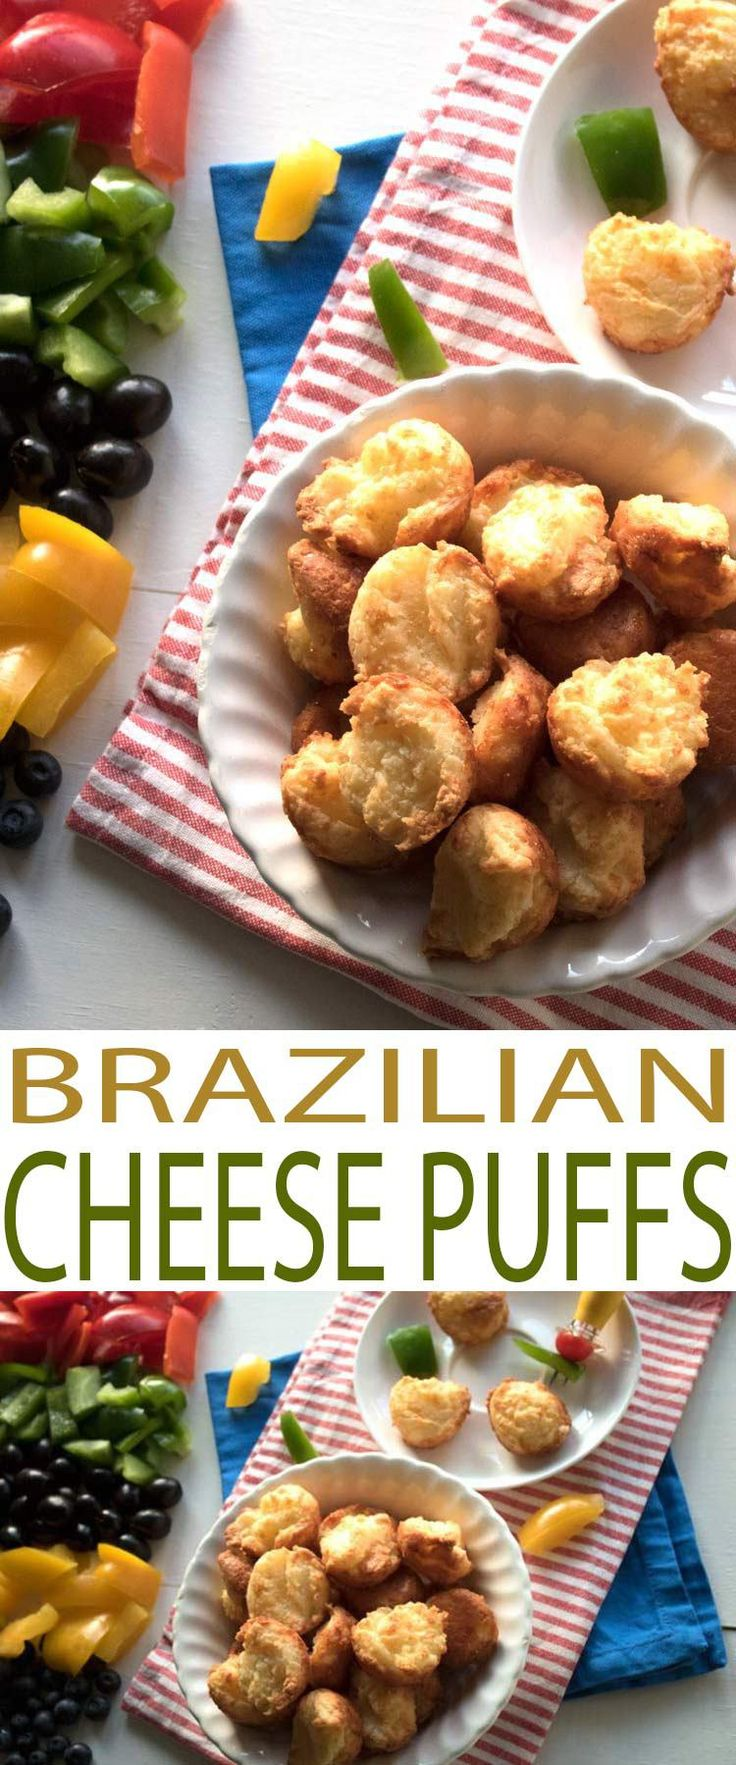 Make Brazilian Cheese Puffs recipe to celebrate the rich history of Brazil and the food traditions that came about because of it.